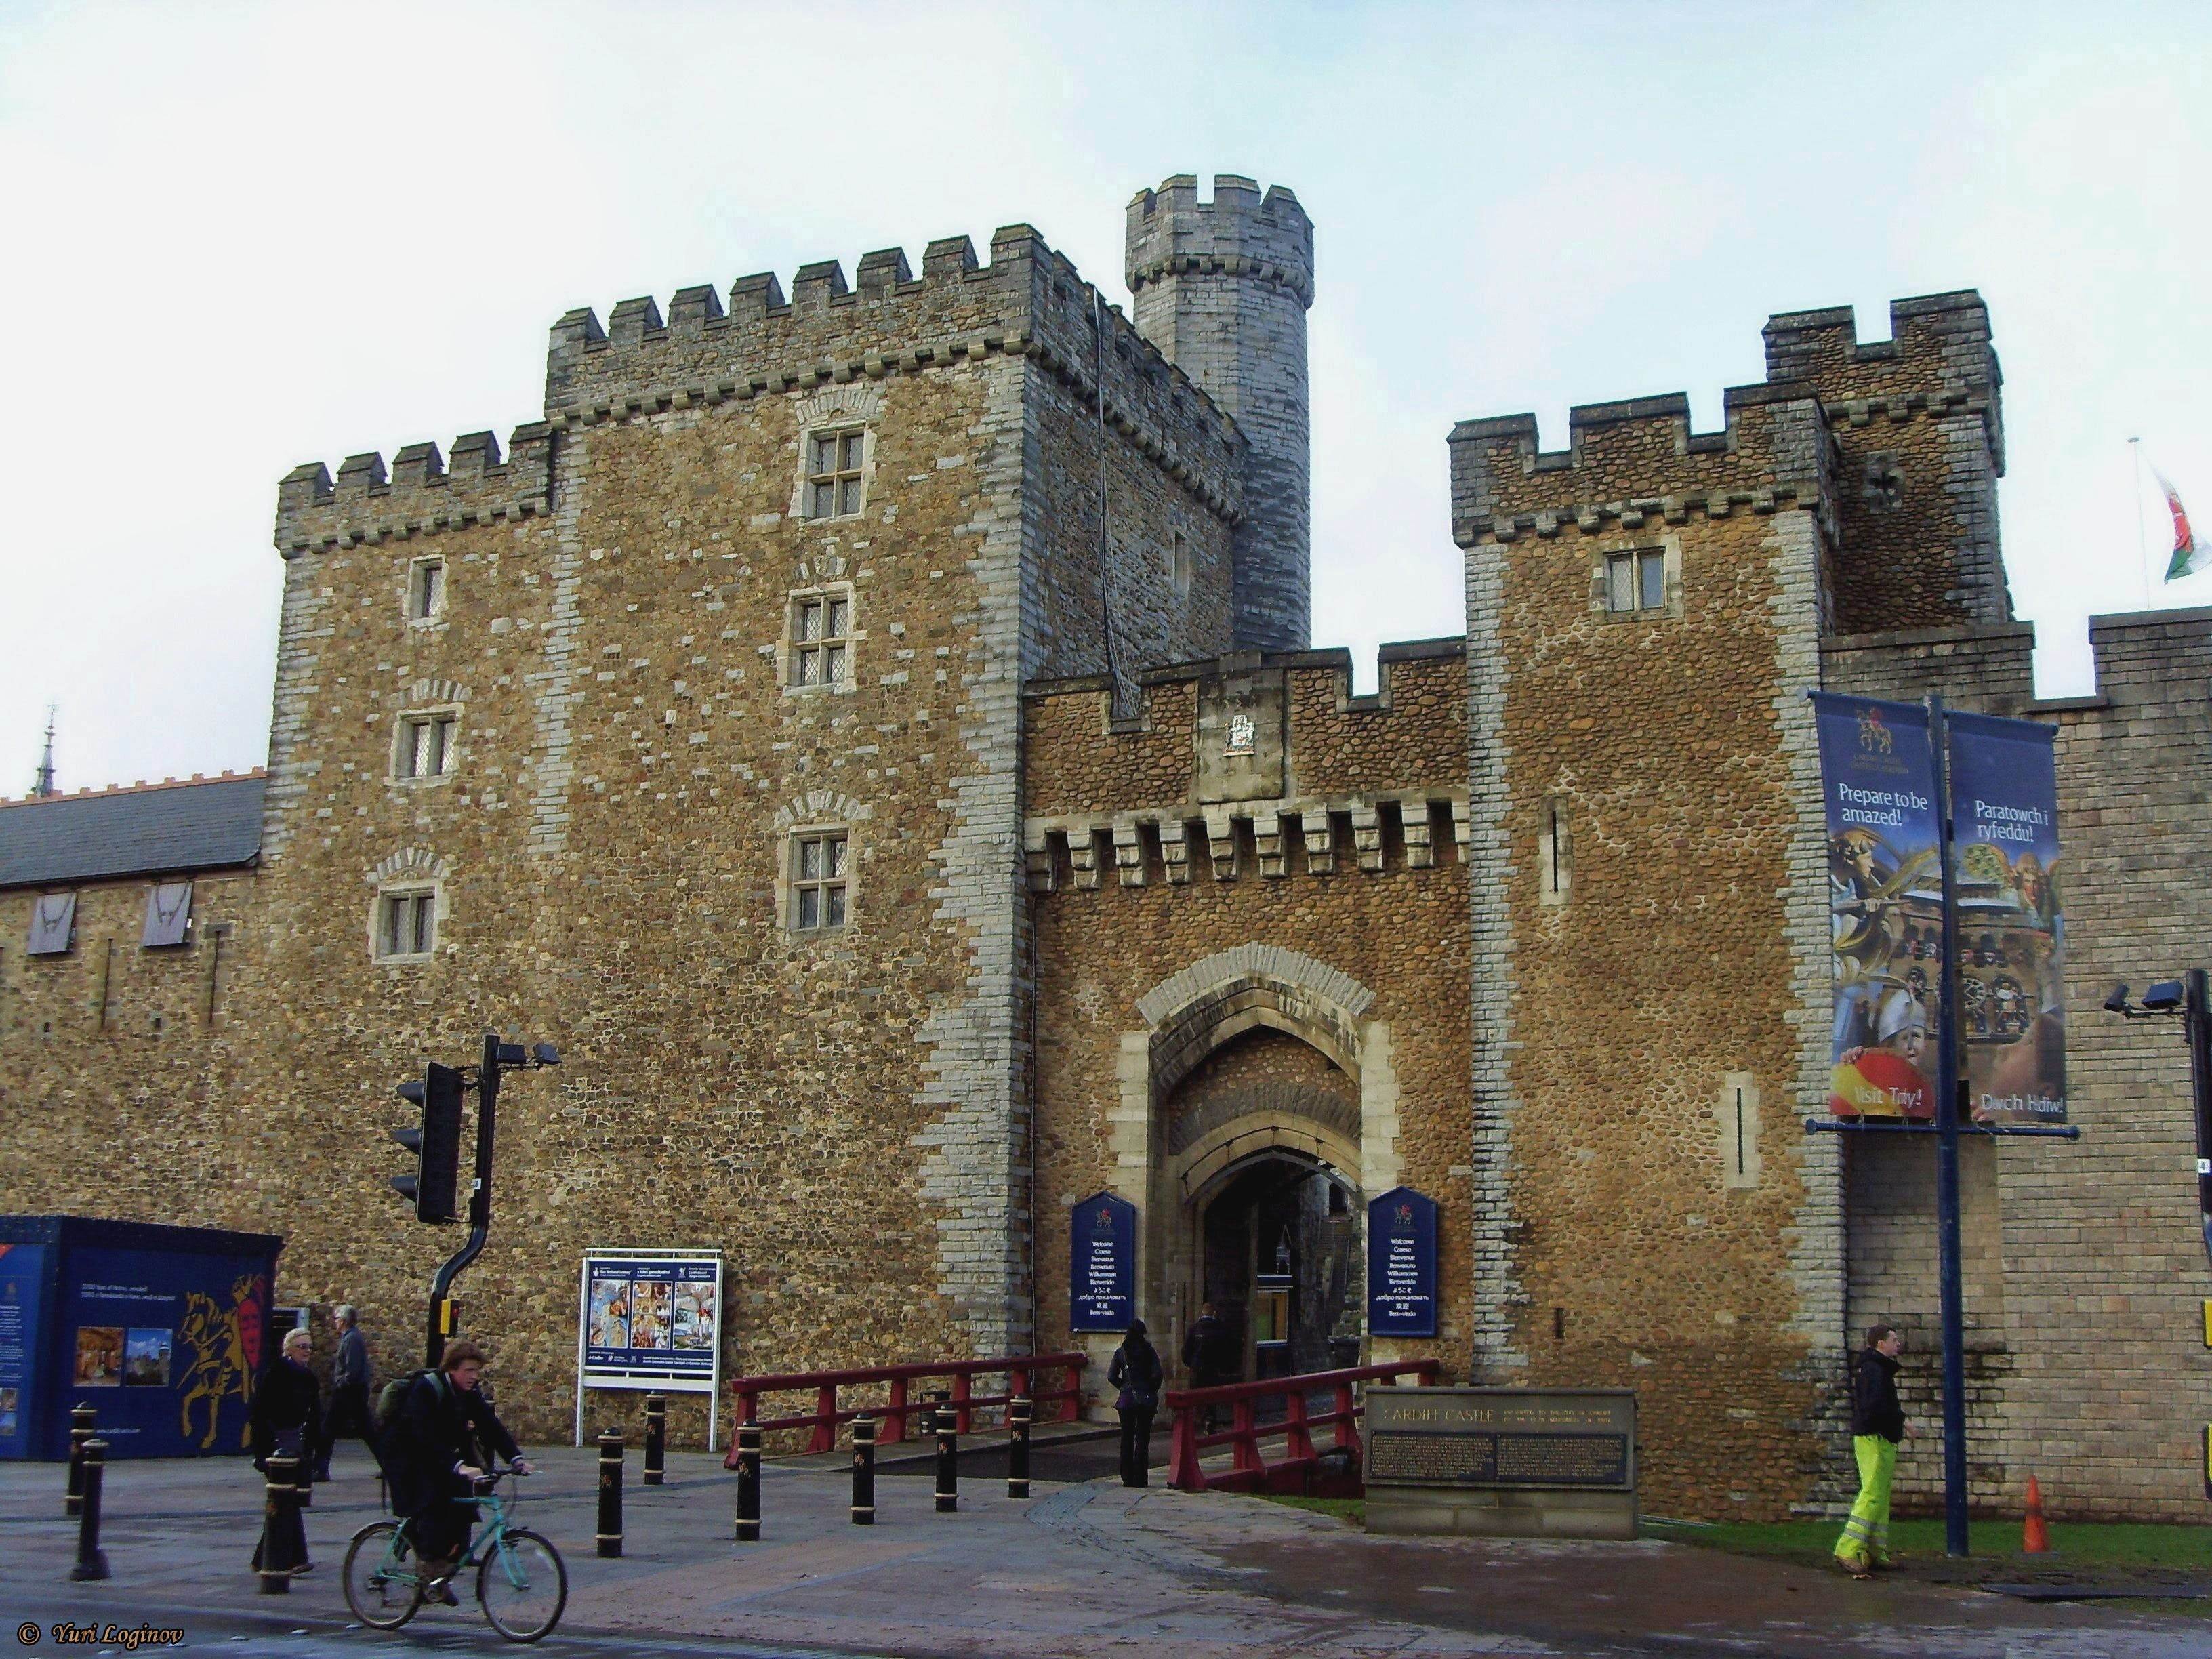 Free stock photo of Wales, united kingdom, cardiff, Cardiff Castle